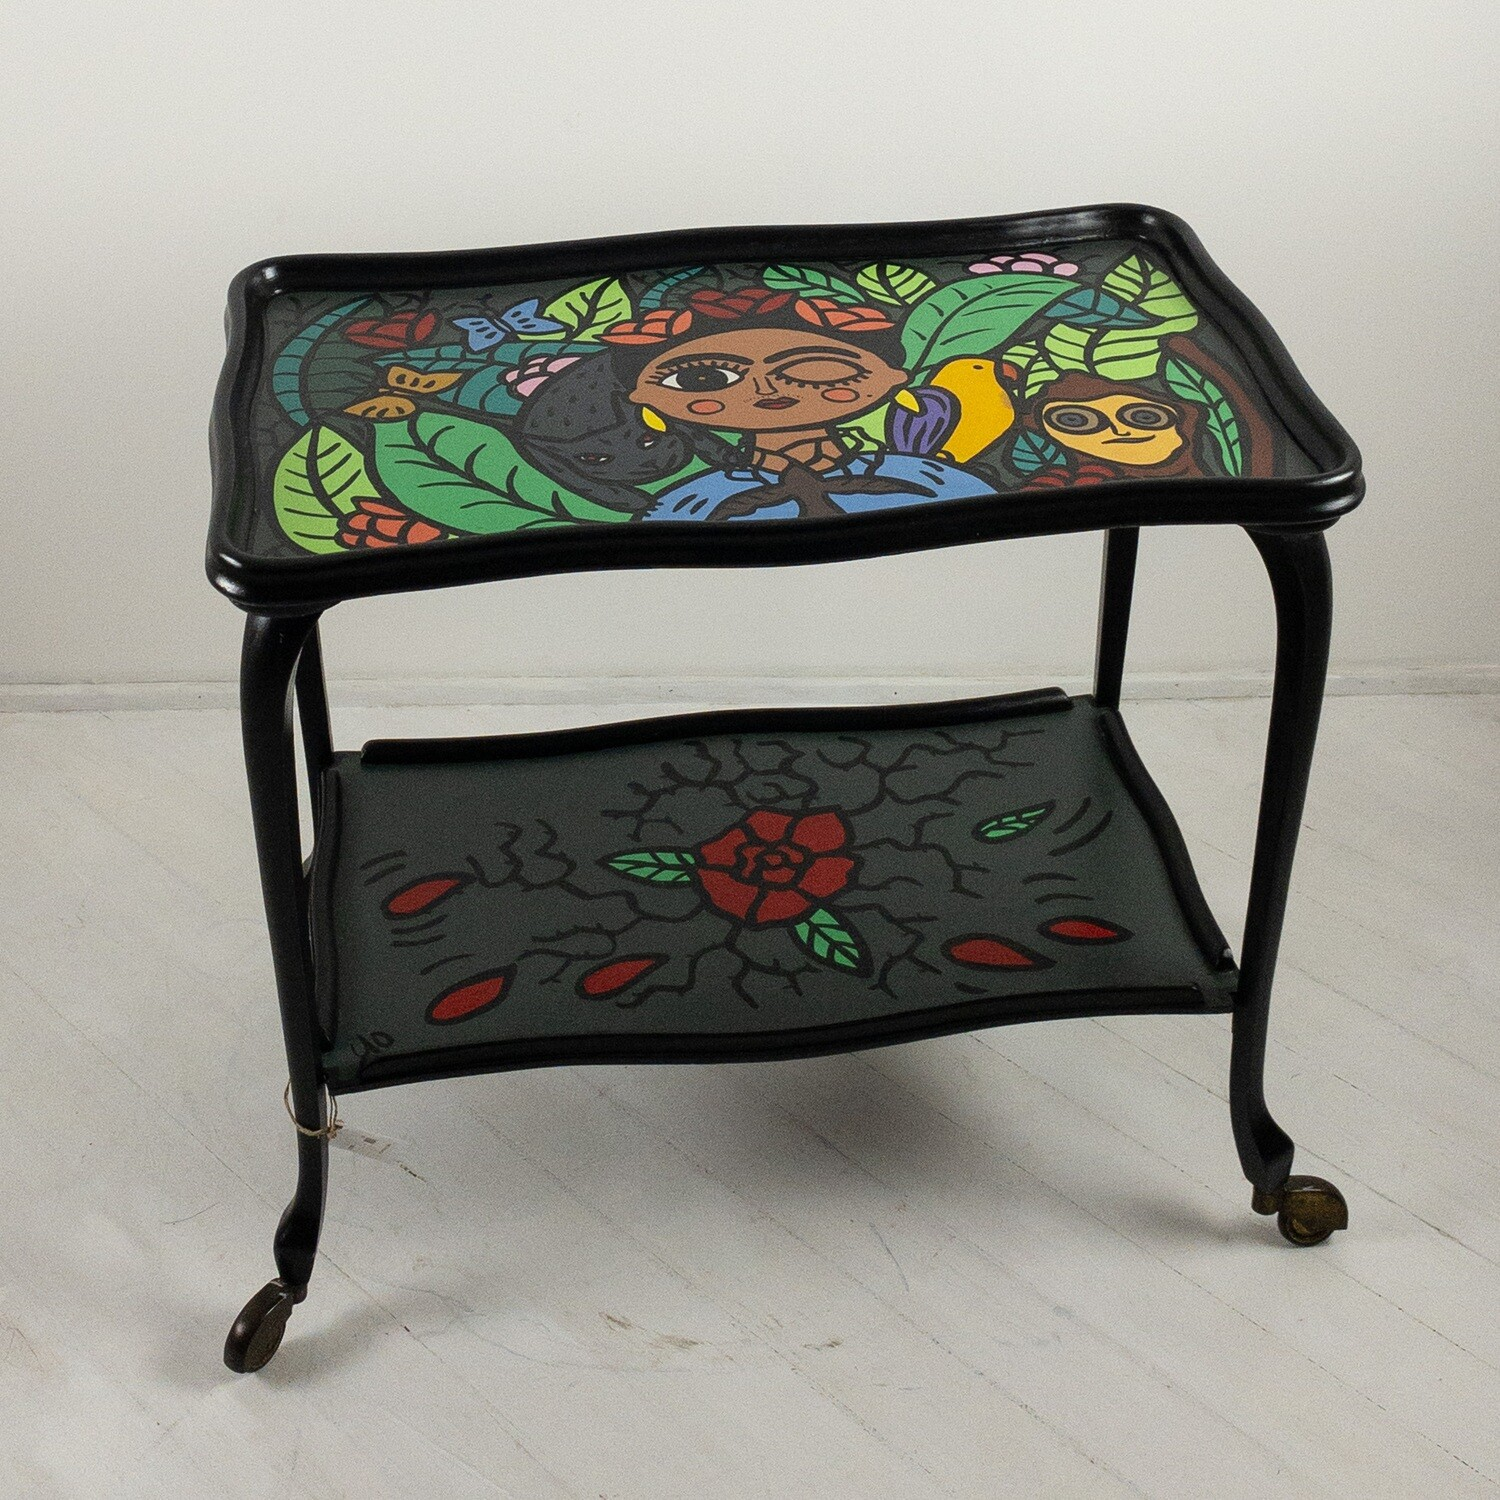 Carrello vintage in stile Pop Art Frida